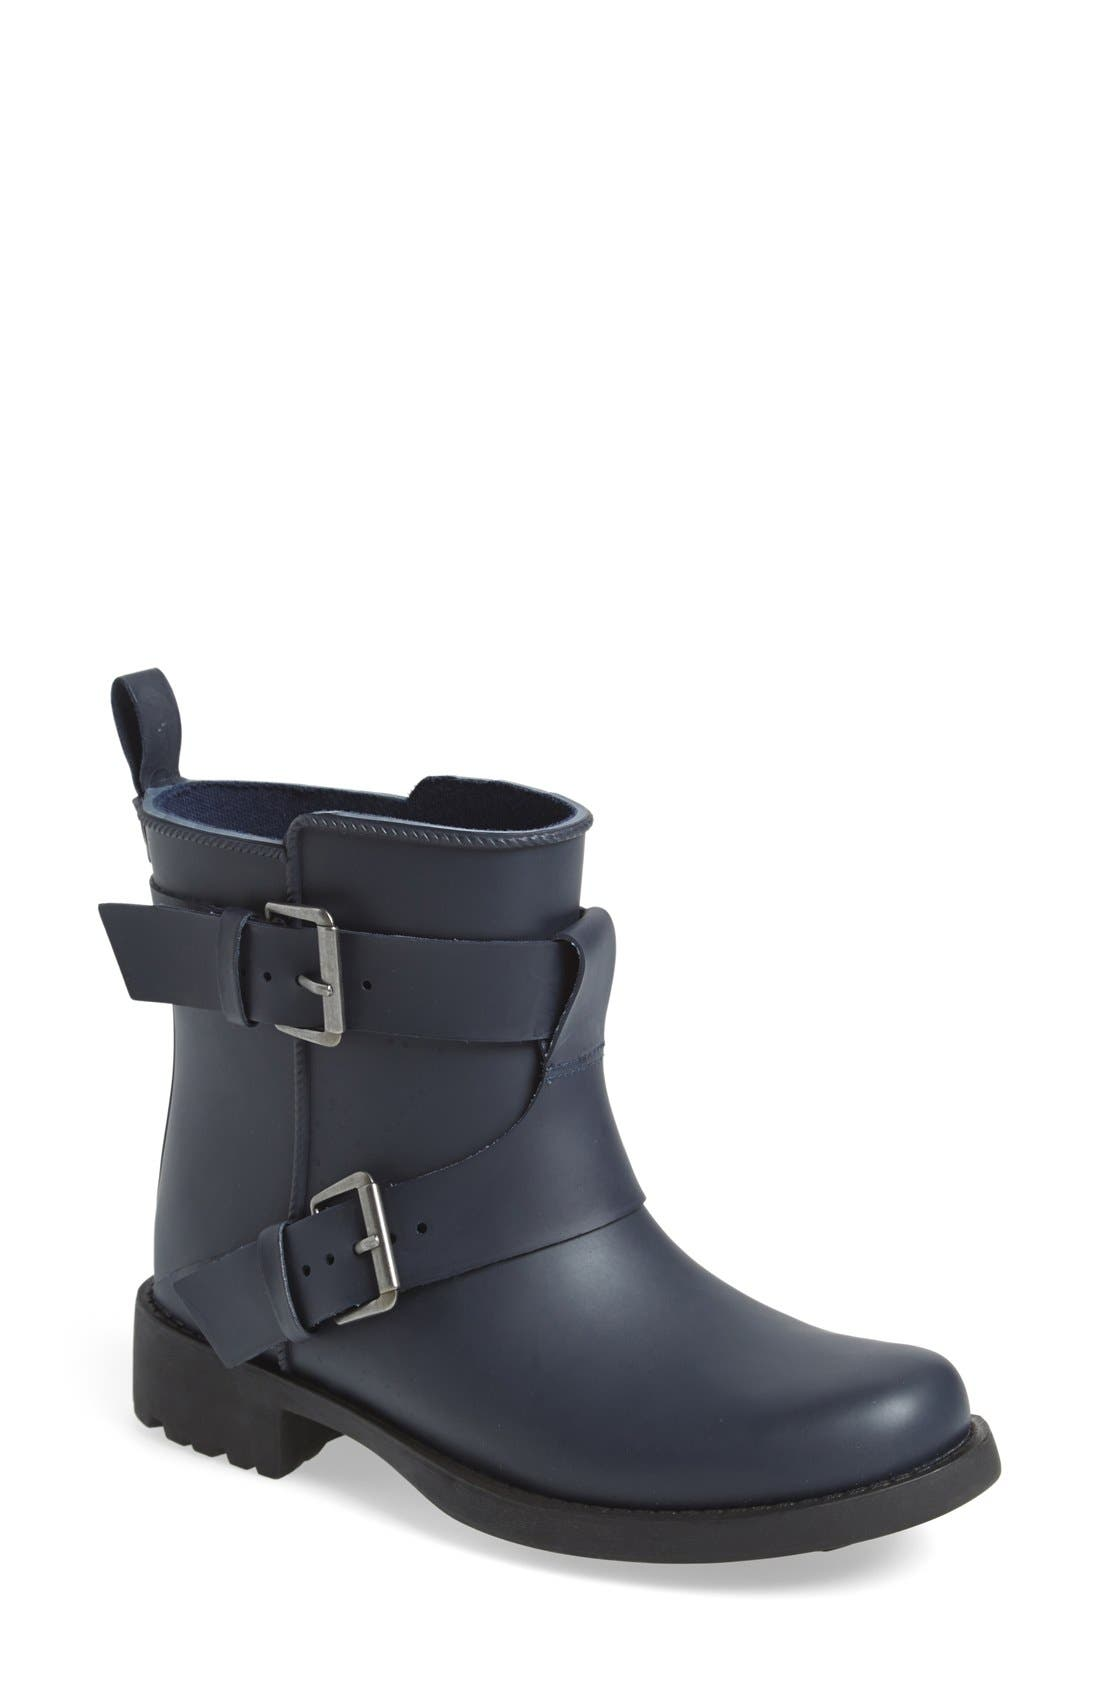 Alternate Image 1 Selected - Gentle Souls 'Best Fun' Moto Rain Boot (Women)